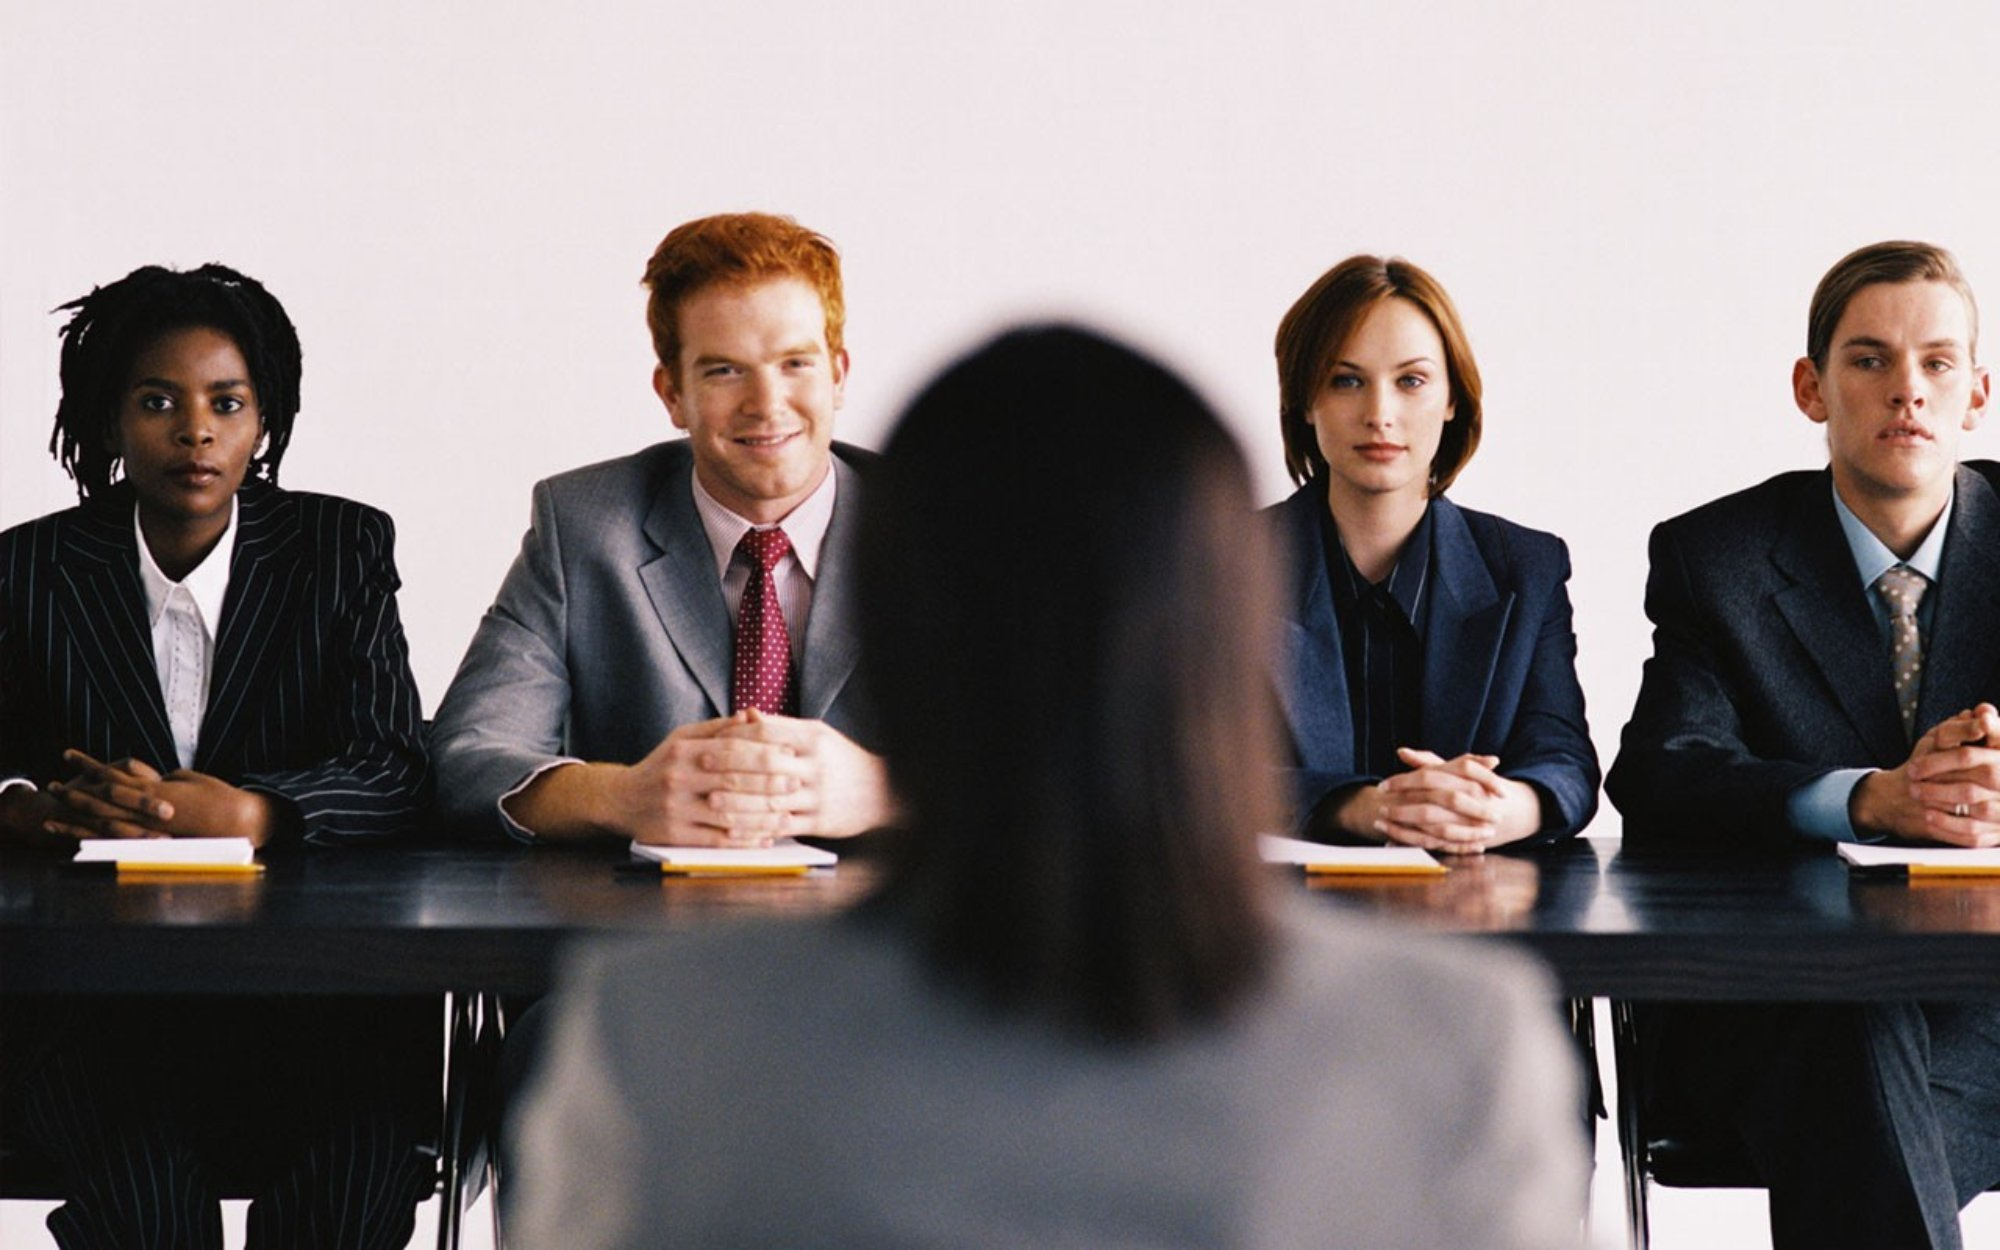 how to look professional in a job interview alphagamma